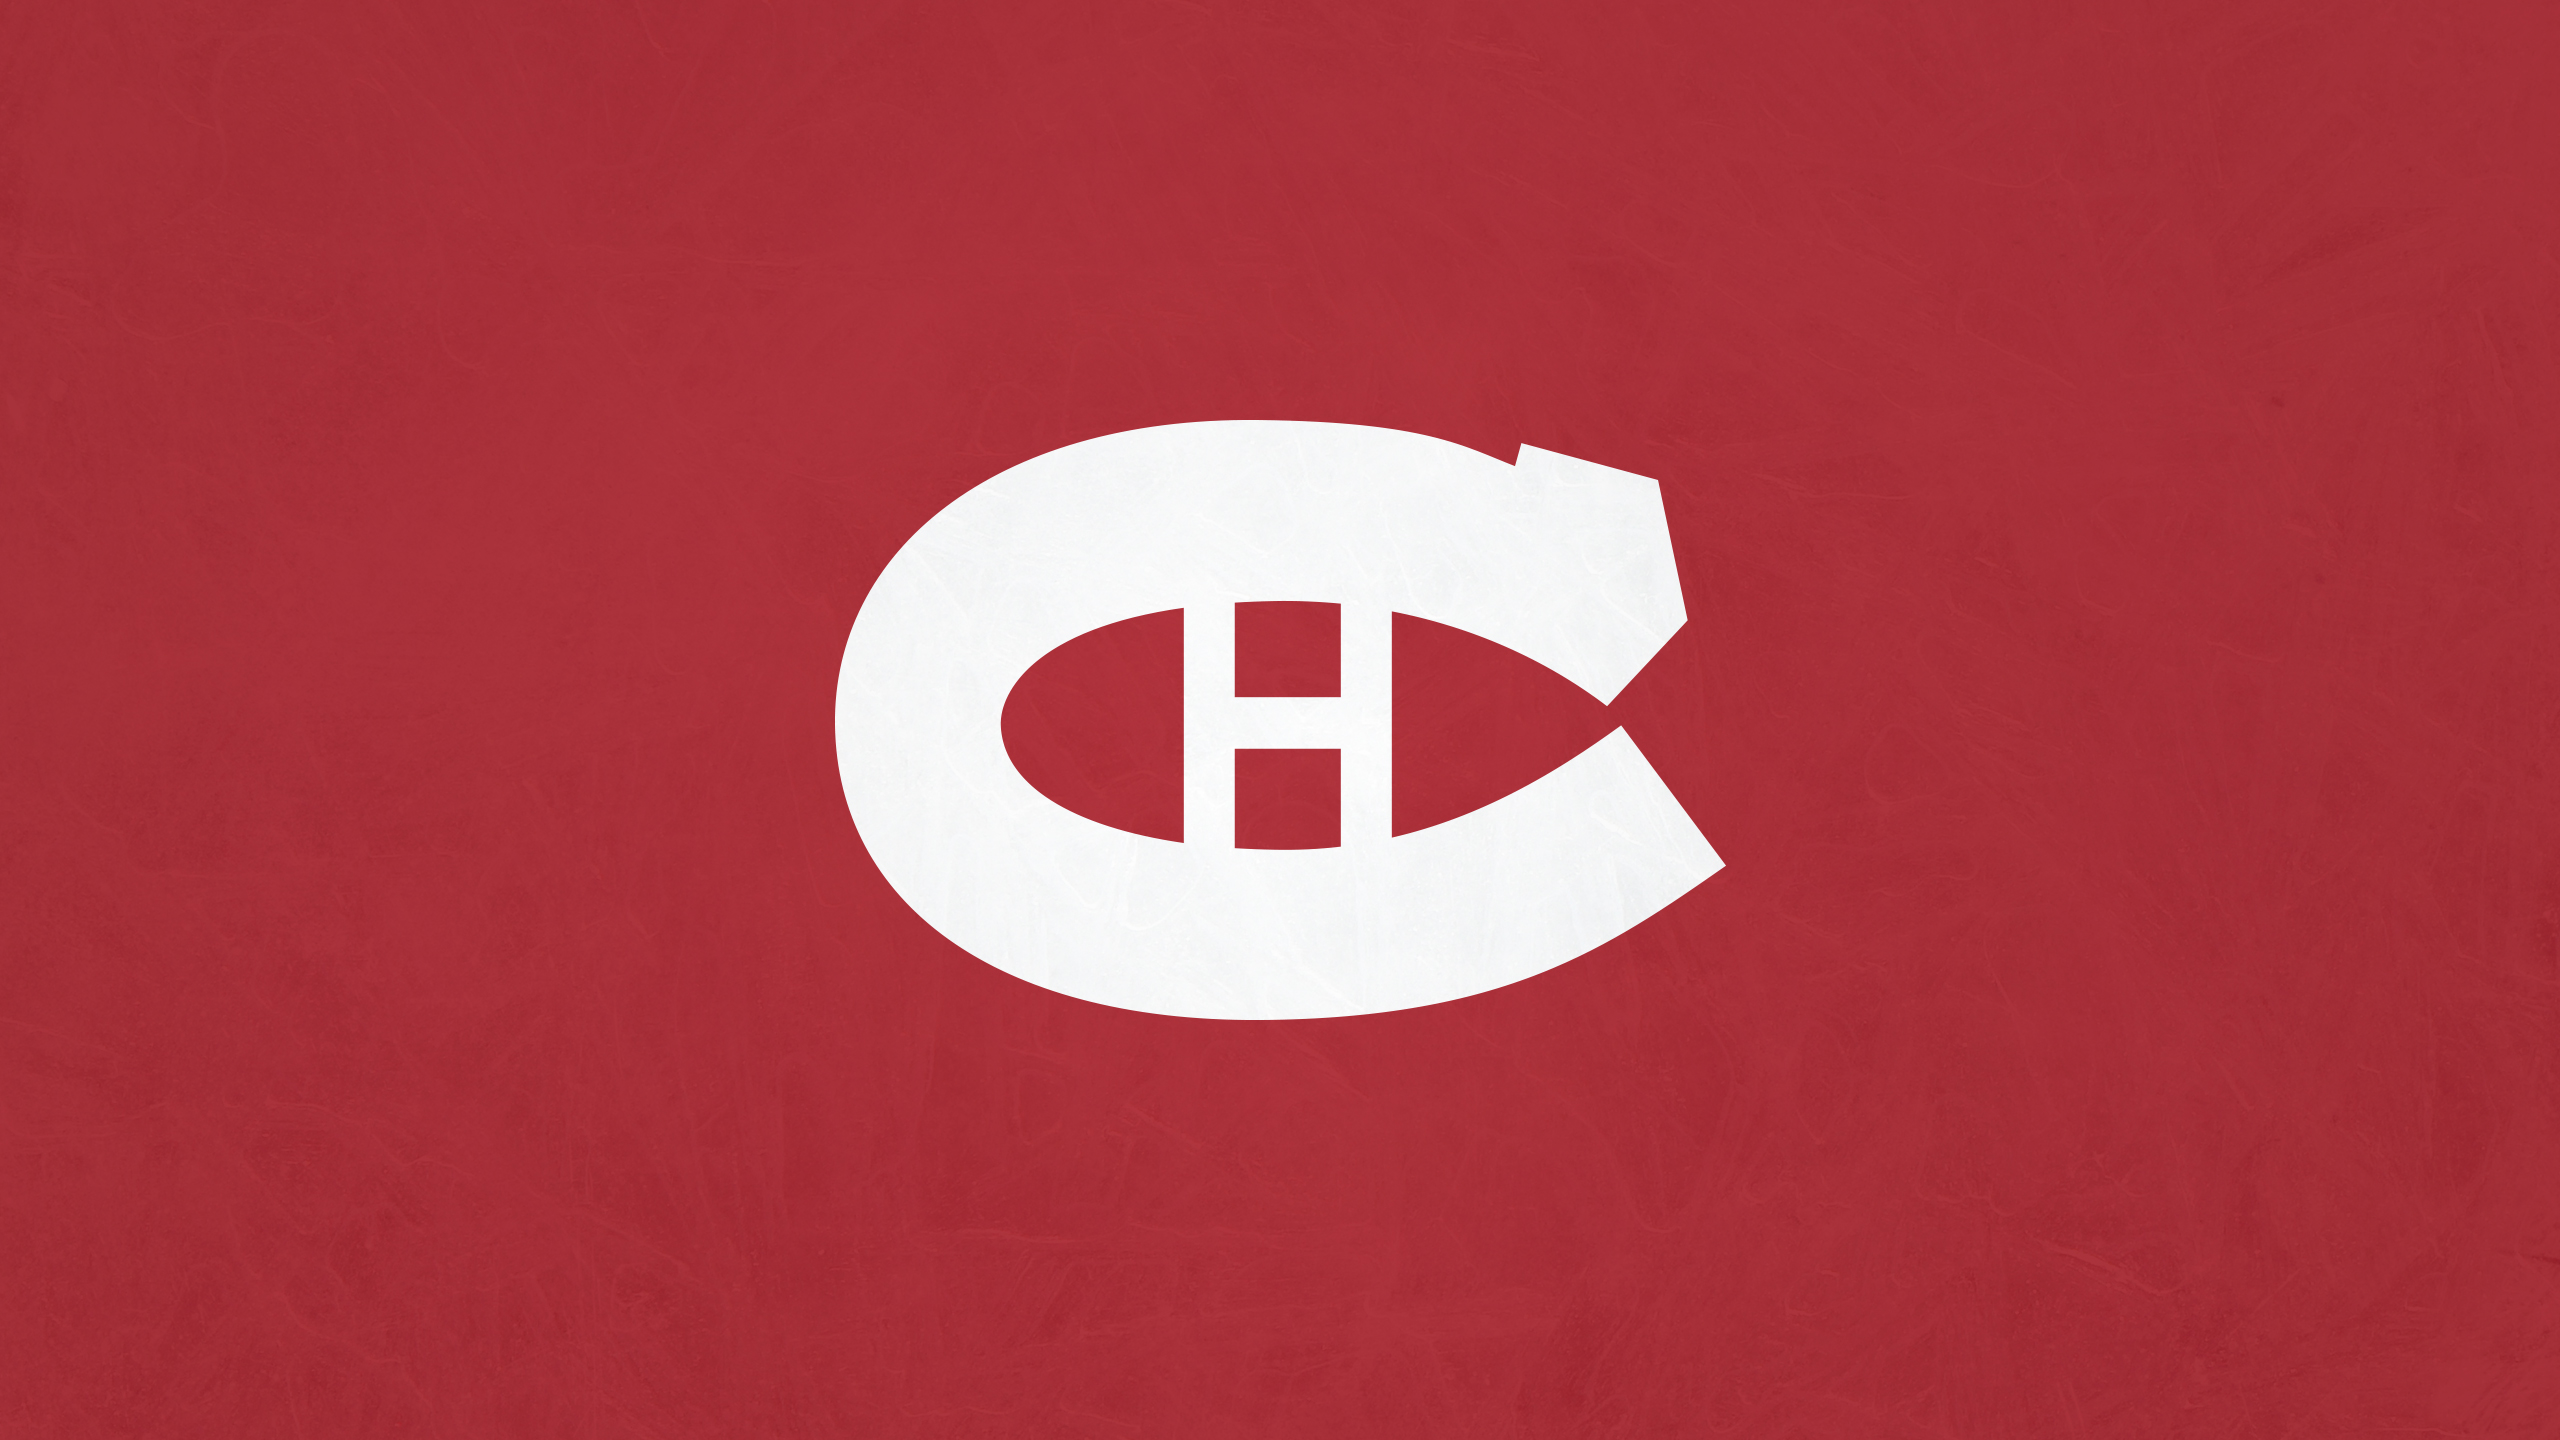 Most Inspiring Wallpaper Logo Montreal Canadiens - YV1ceXo  Pictures_51875.jpg